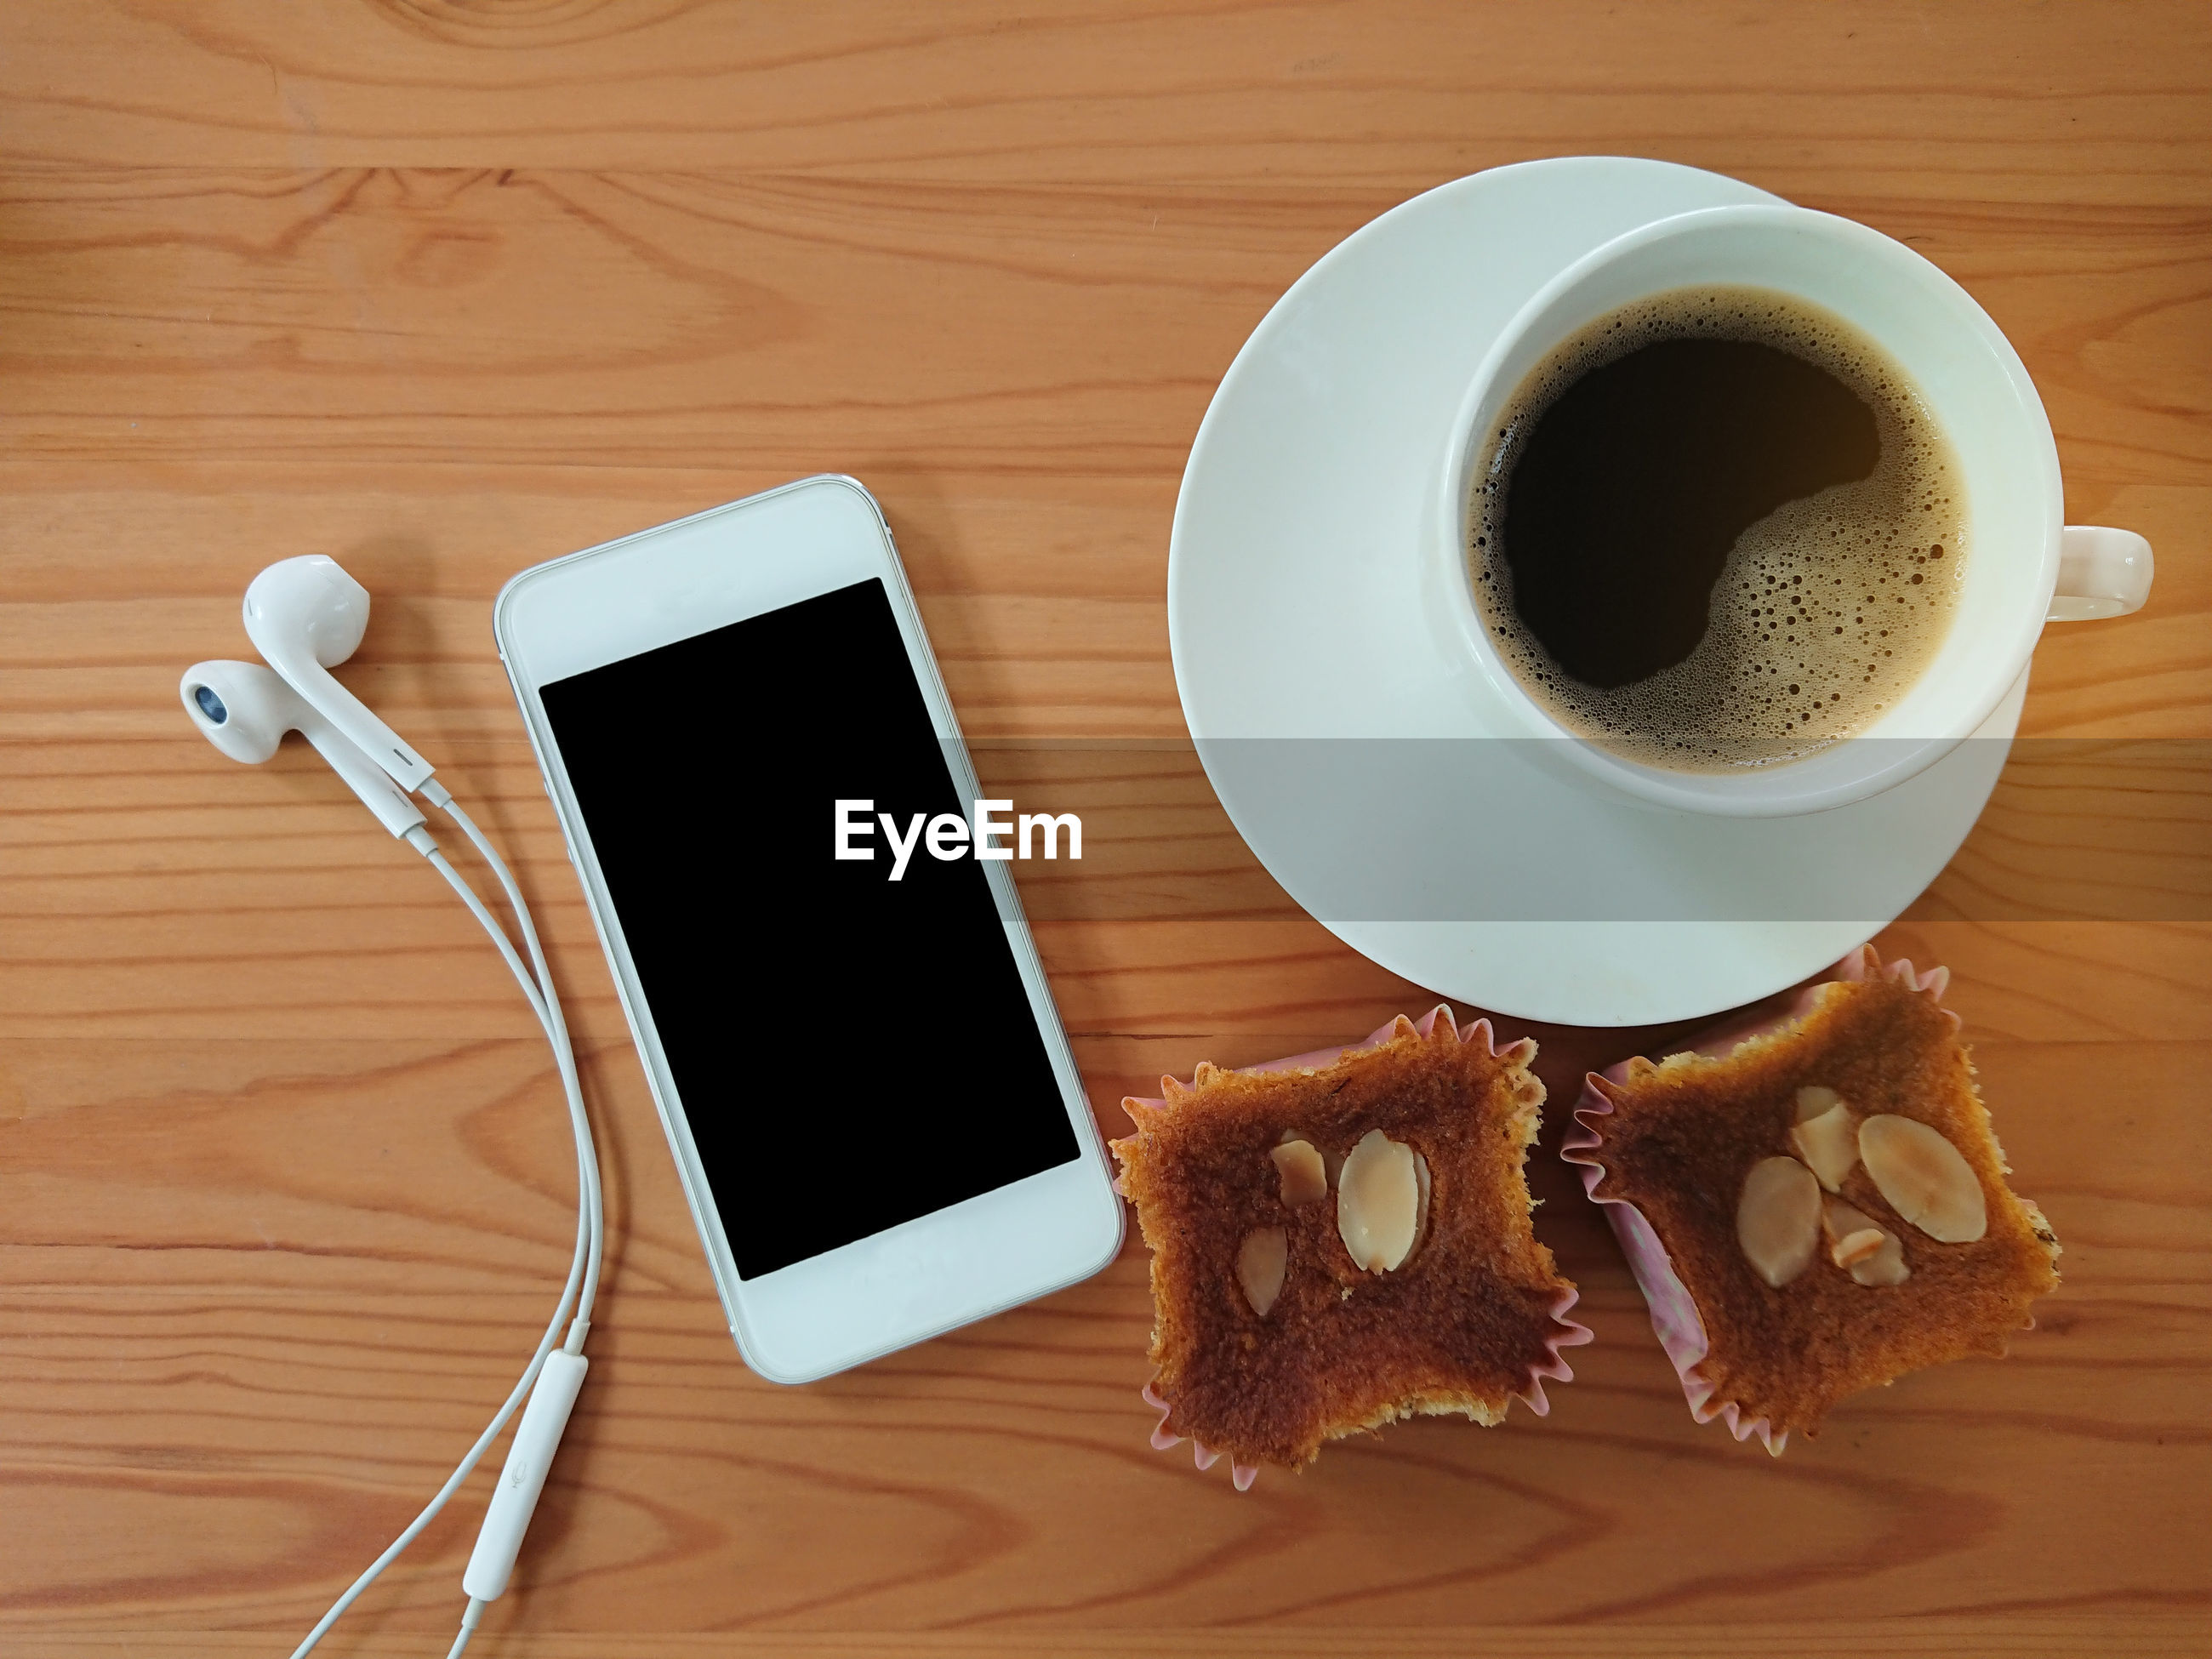 High angle view of food and drink by mobile phone on table